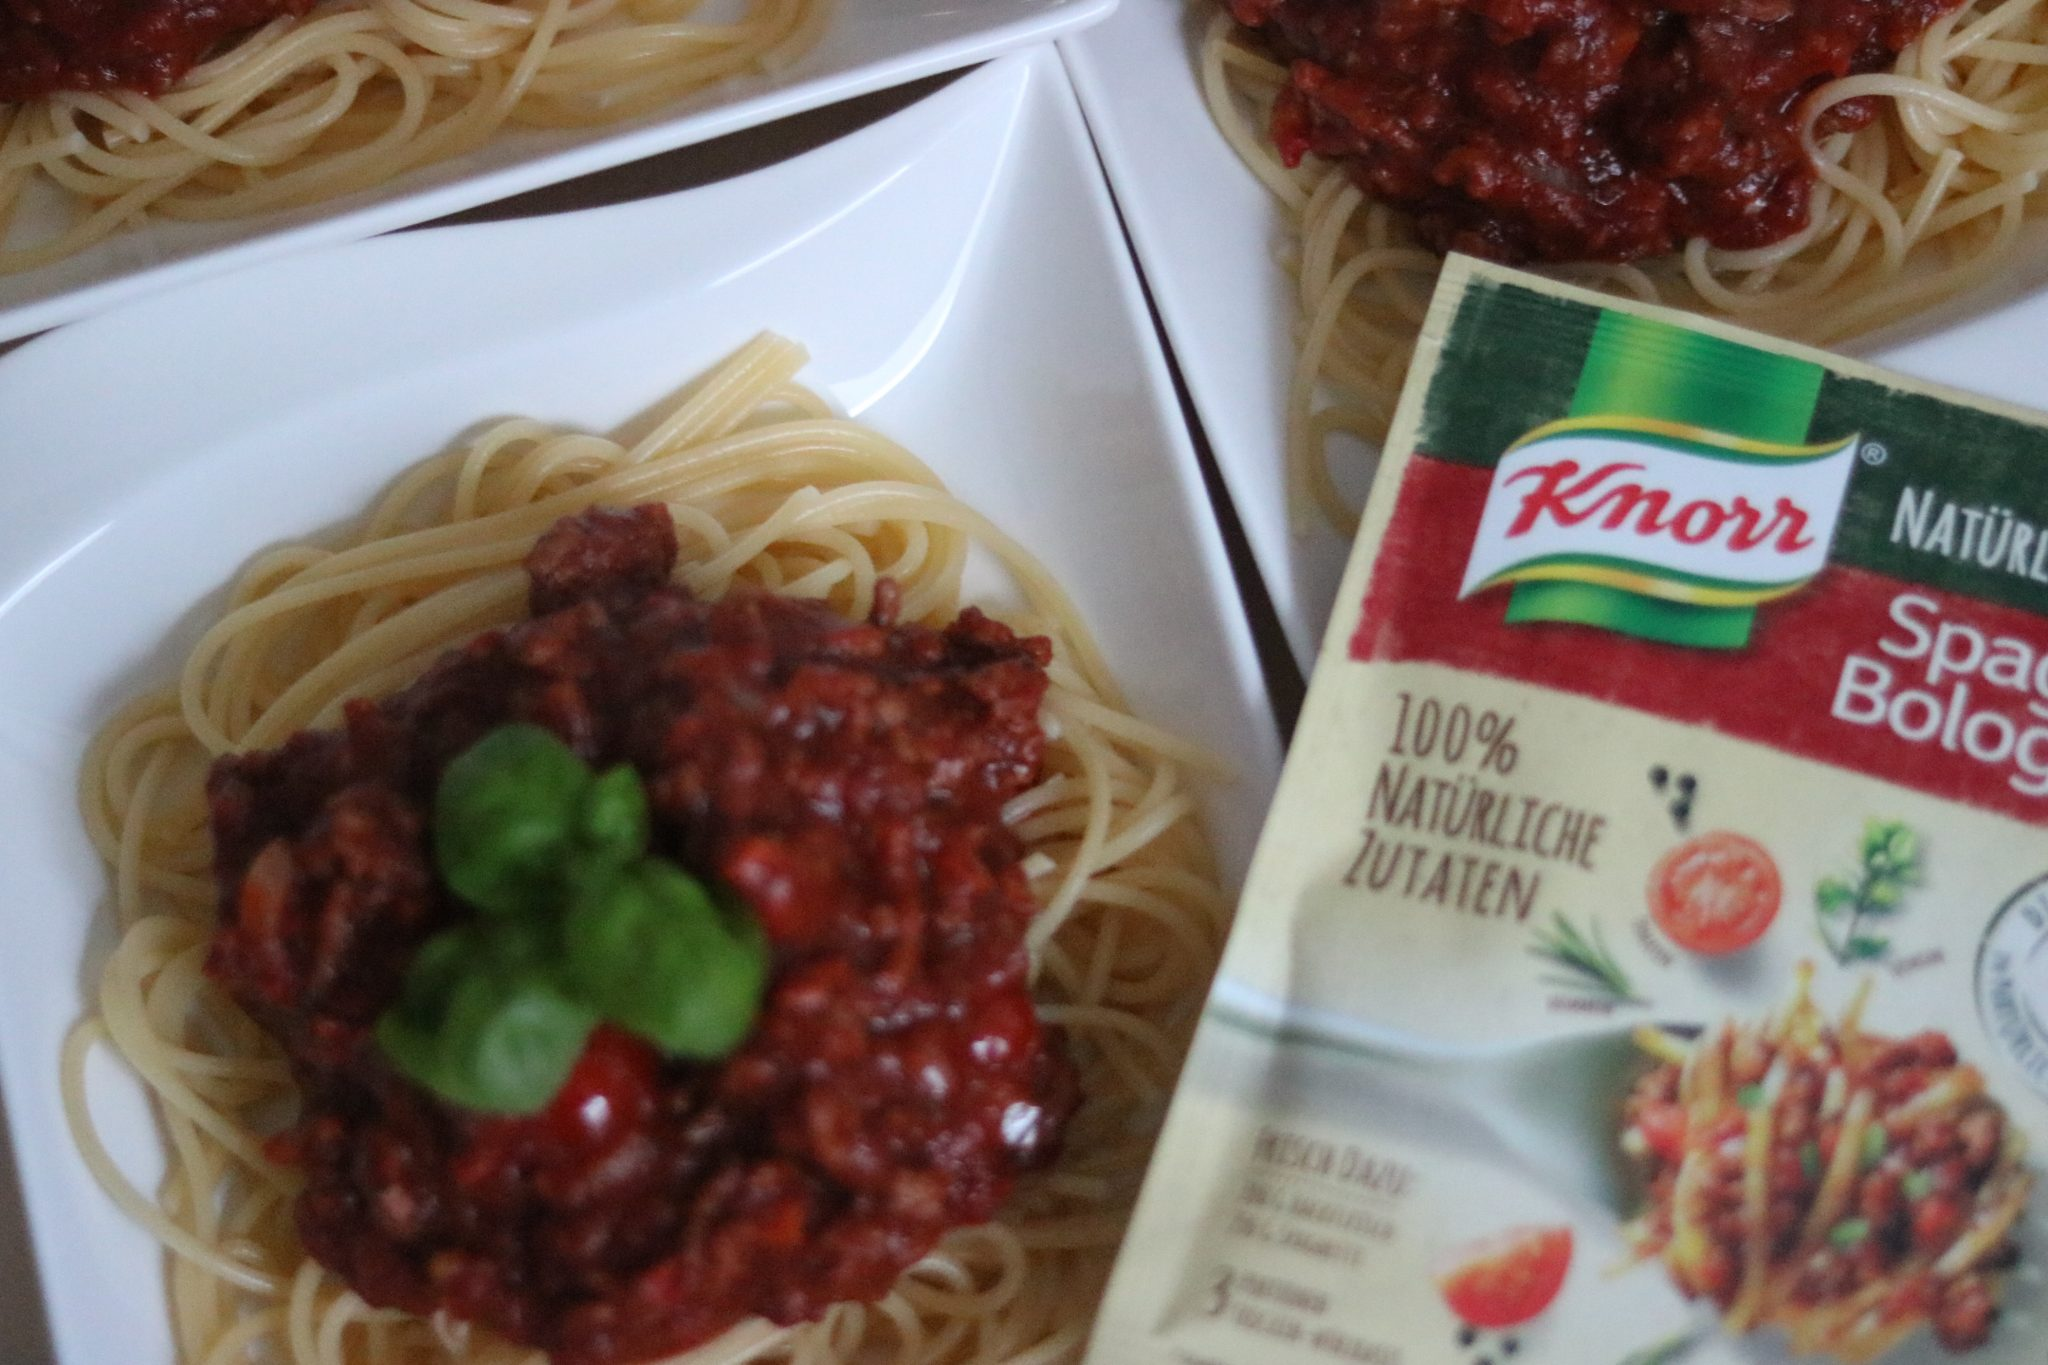 Spagehtti-Bolognese-von-KNORR